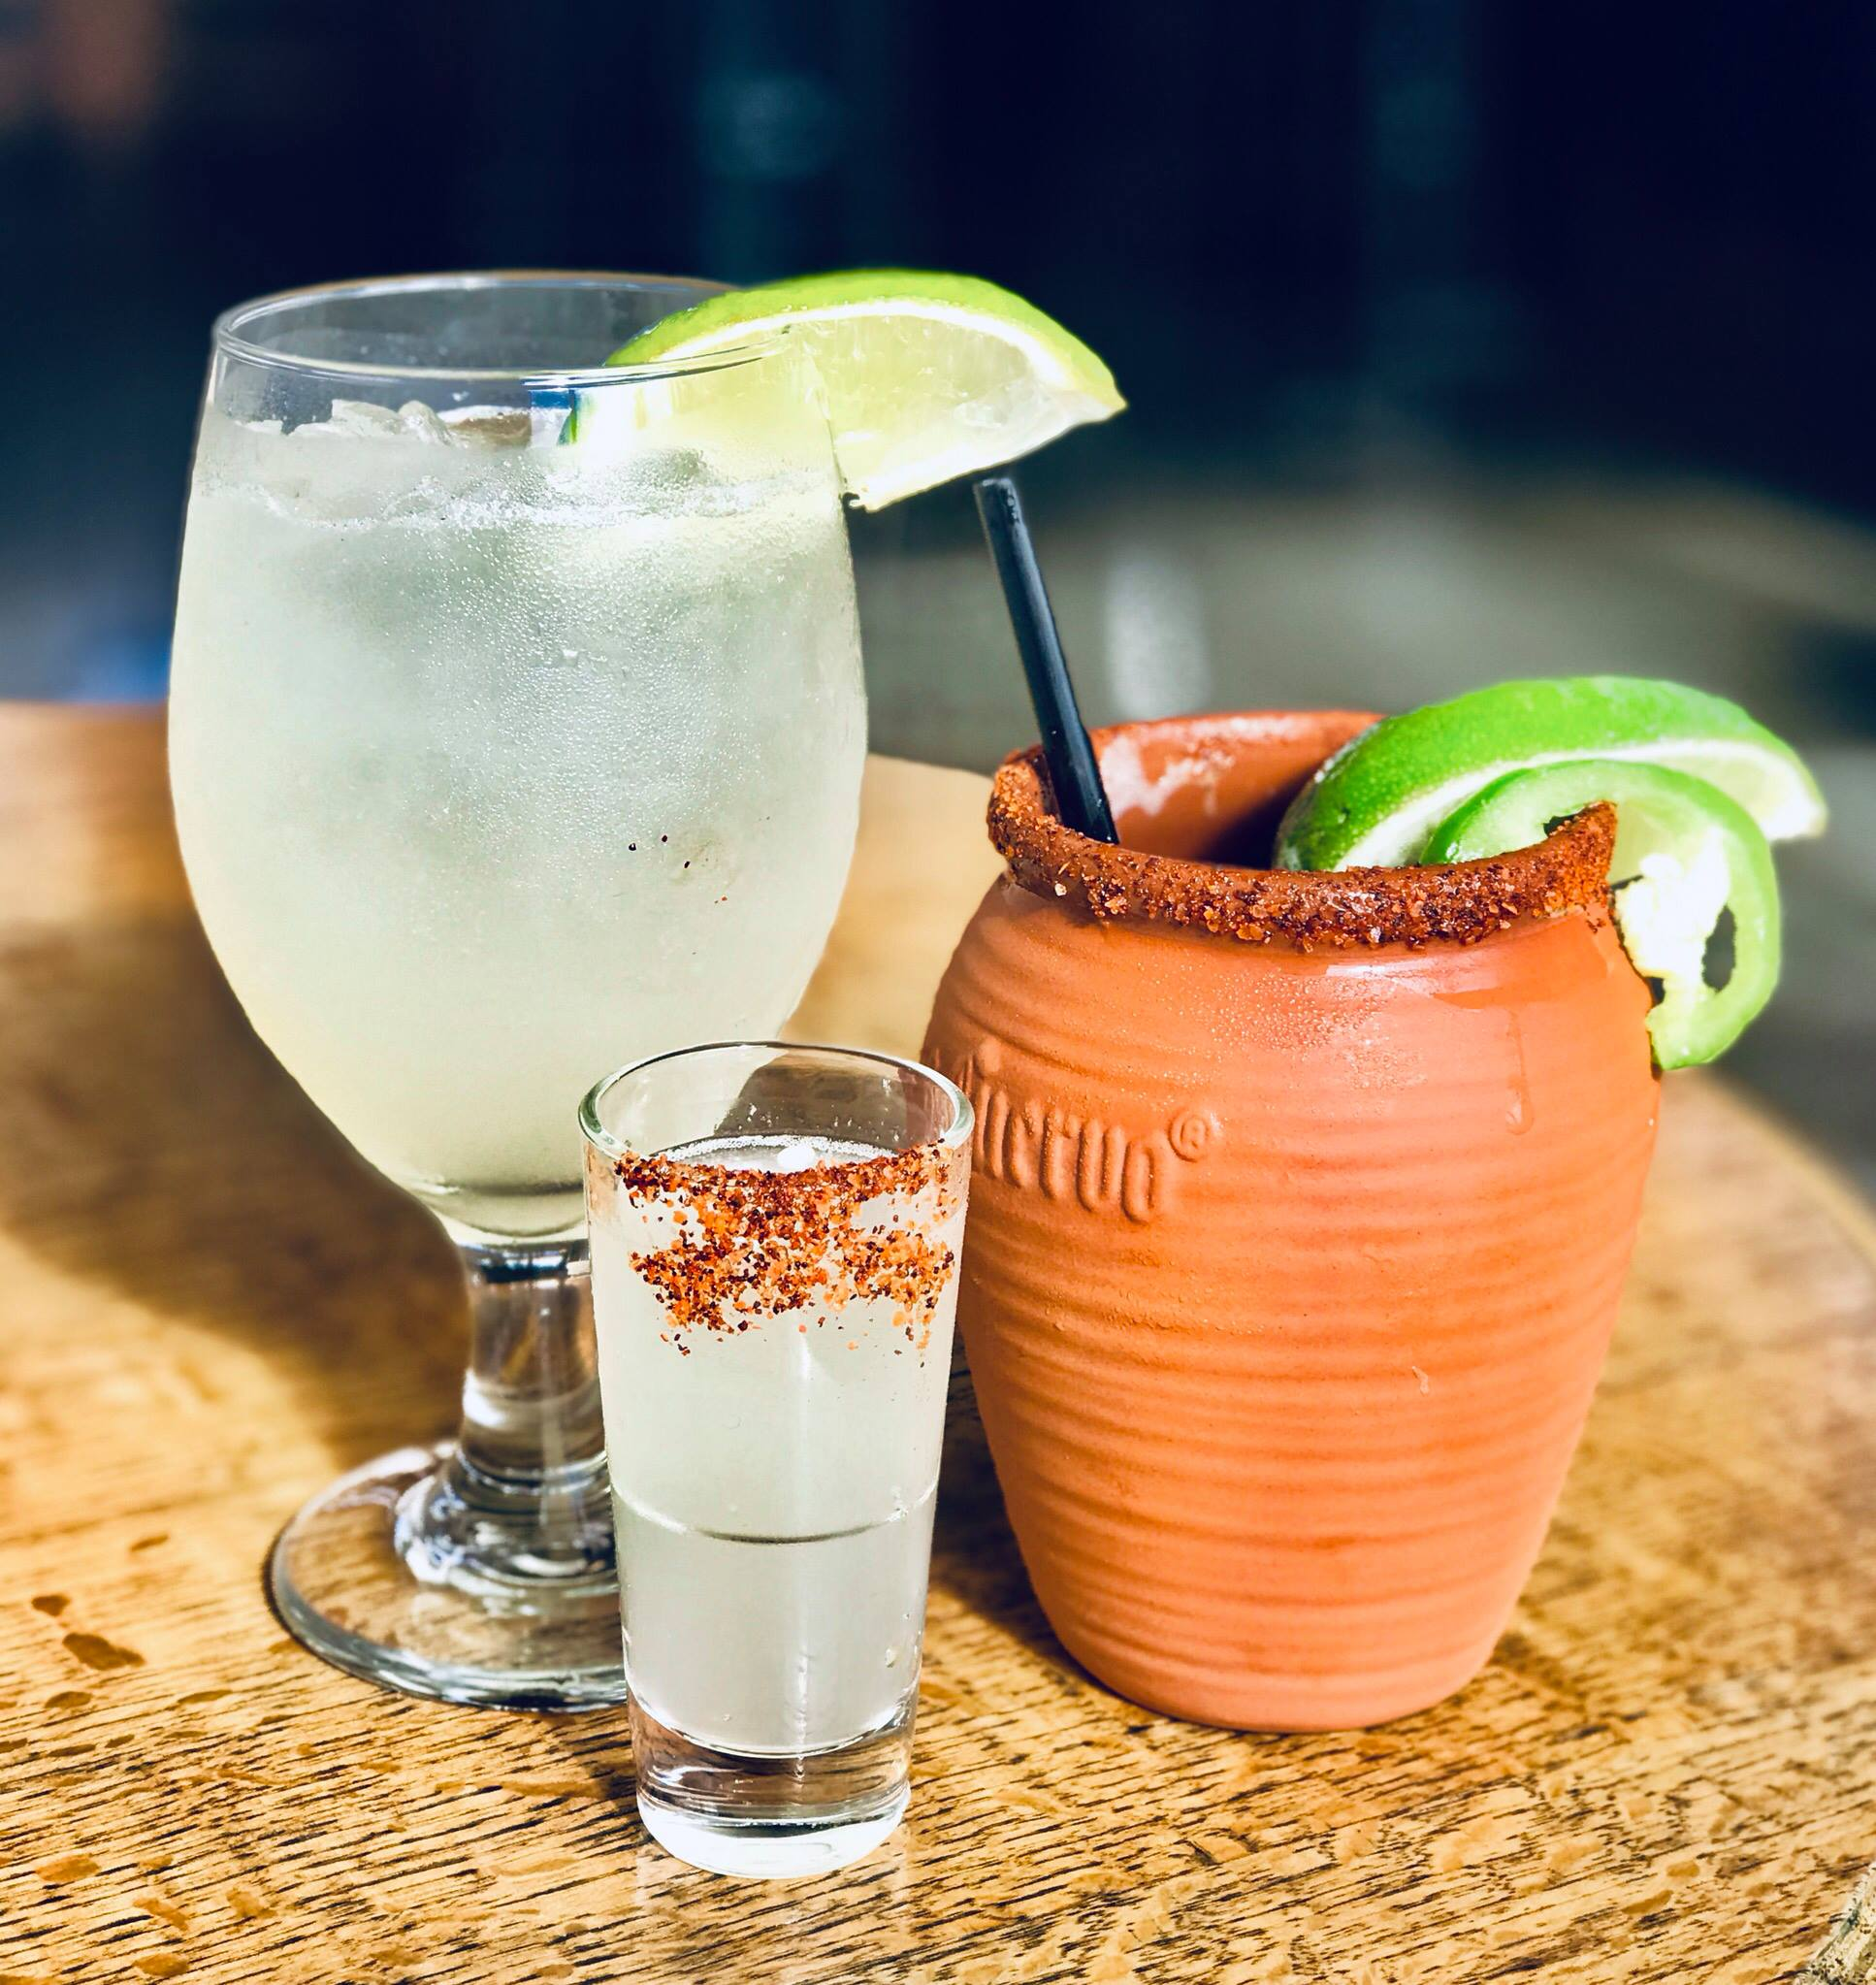 New Irving Tex-Mex Spot Serves Margaritas With A Side of Cultural Appropriation